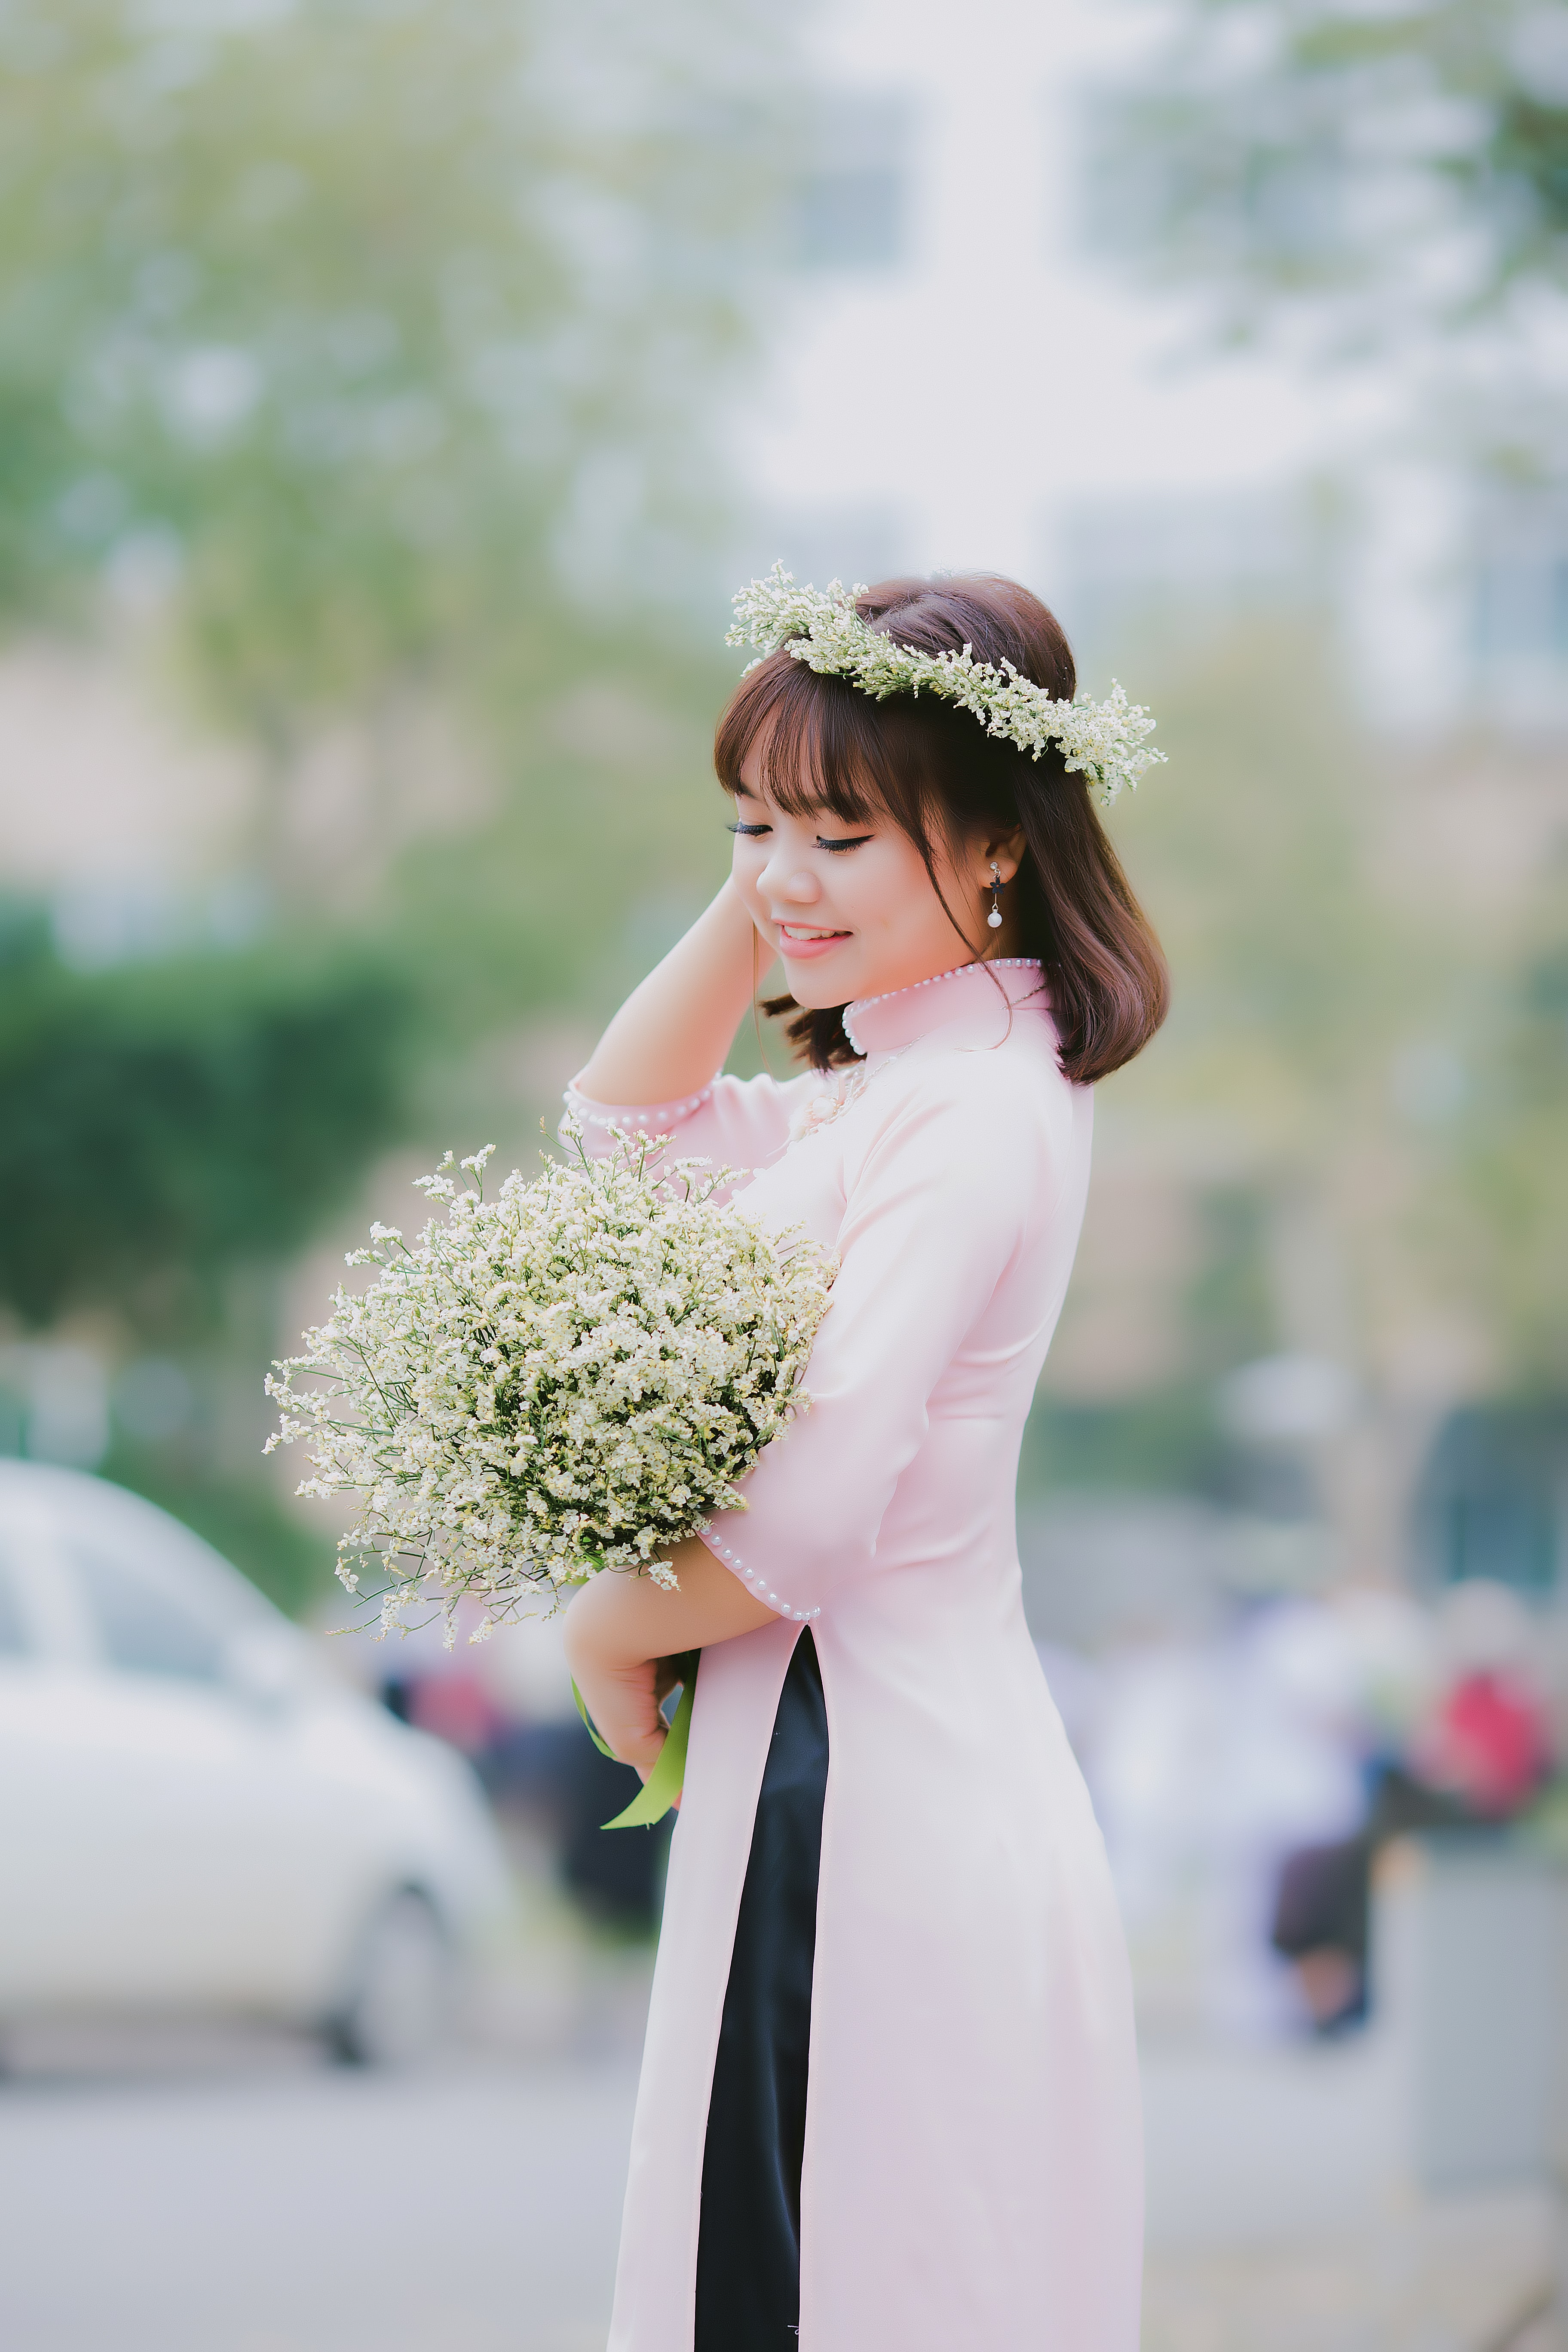 woman holding her hair while carrying white petaled flower bouquet in focus photography